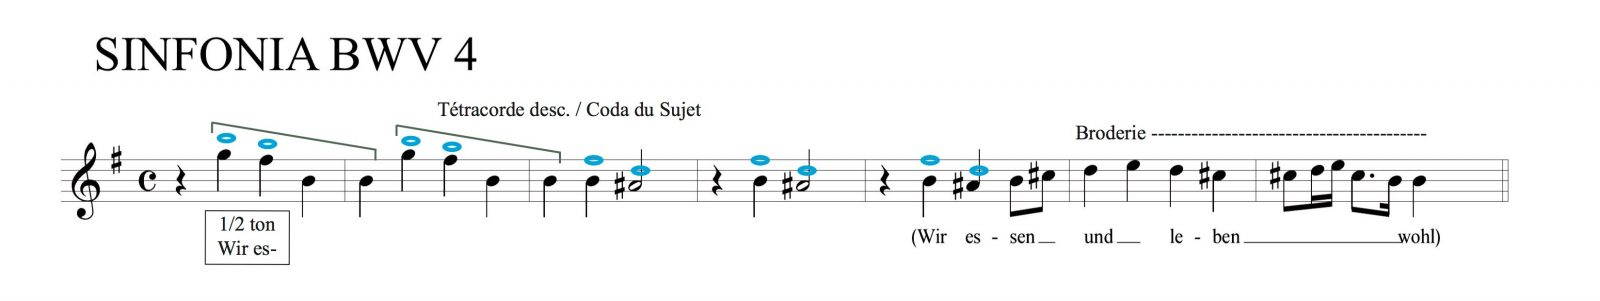 BWV 4 SINFONIA COLORIE OK